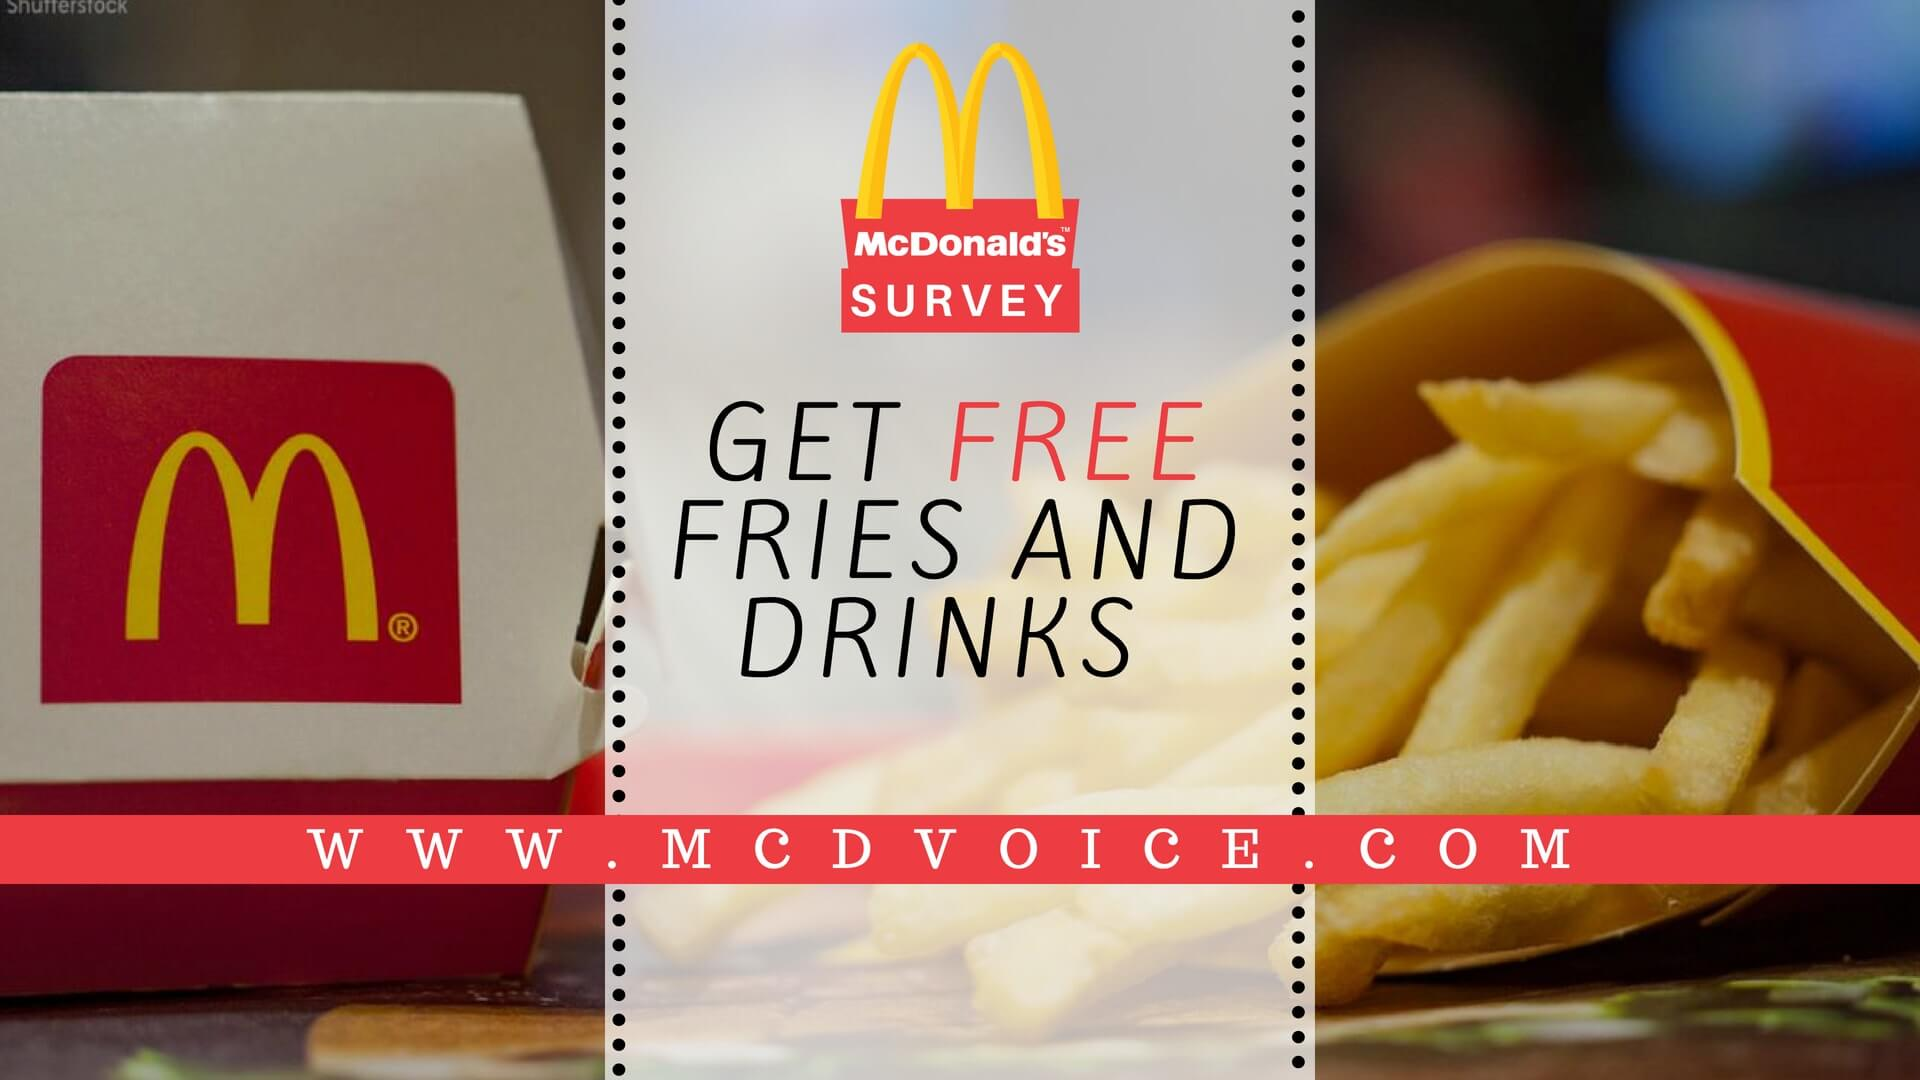 Mcdvoice survey |Get a reward of Free Fries & Drink by taking Mcdonalds survey